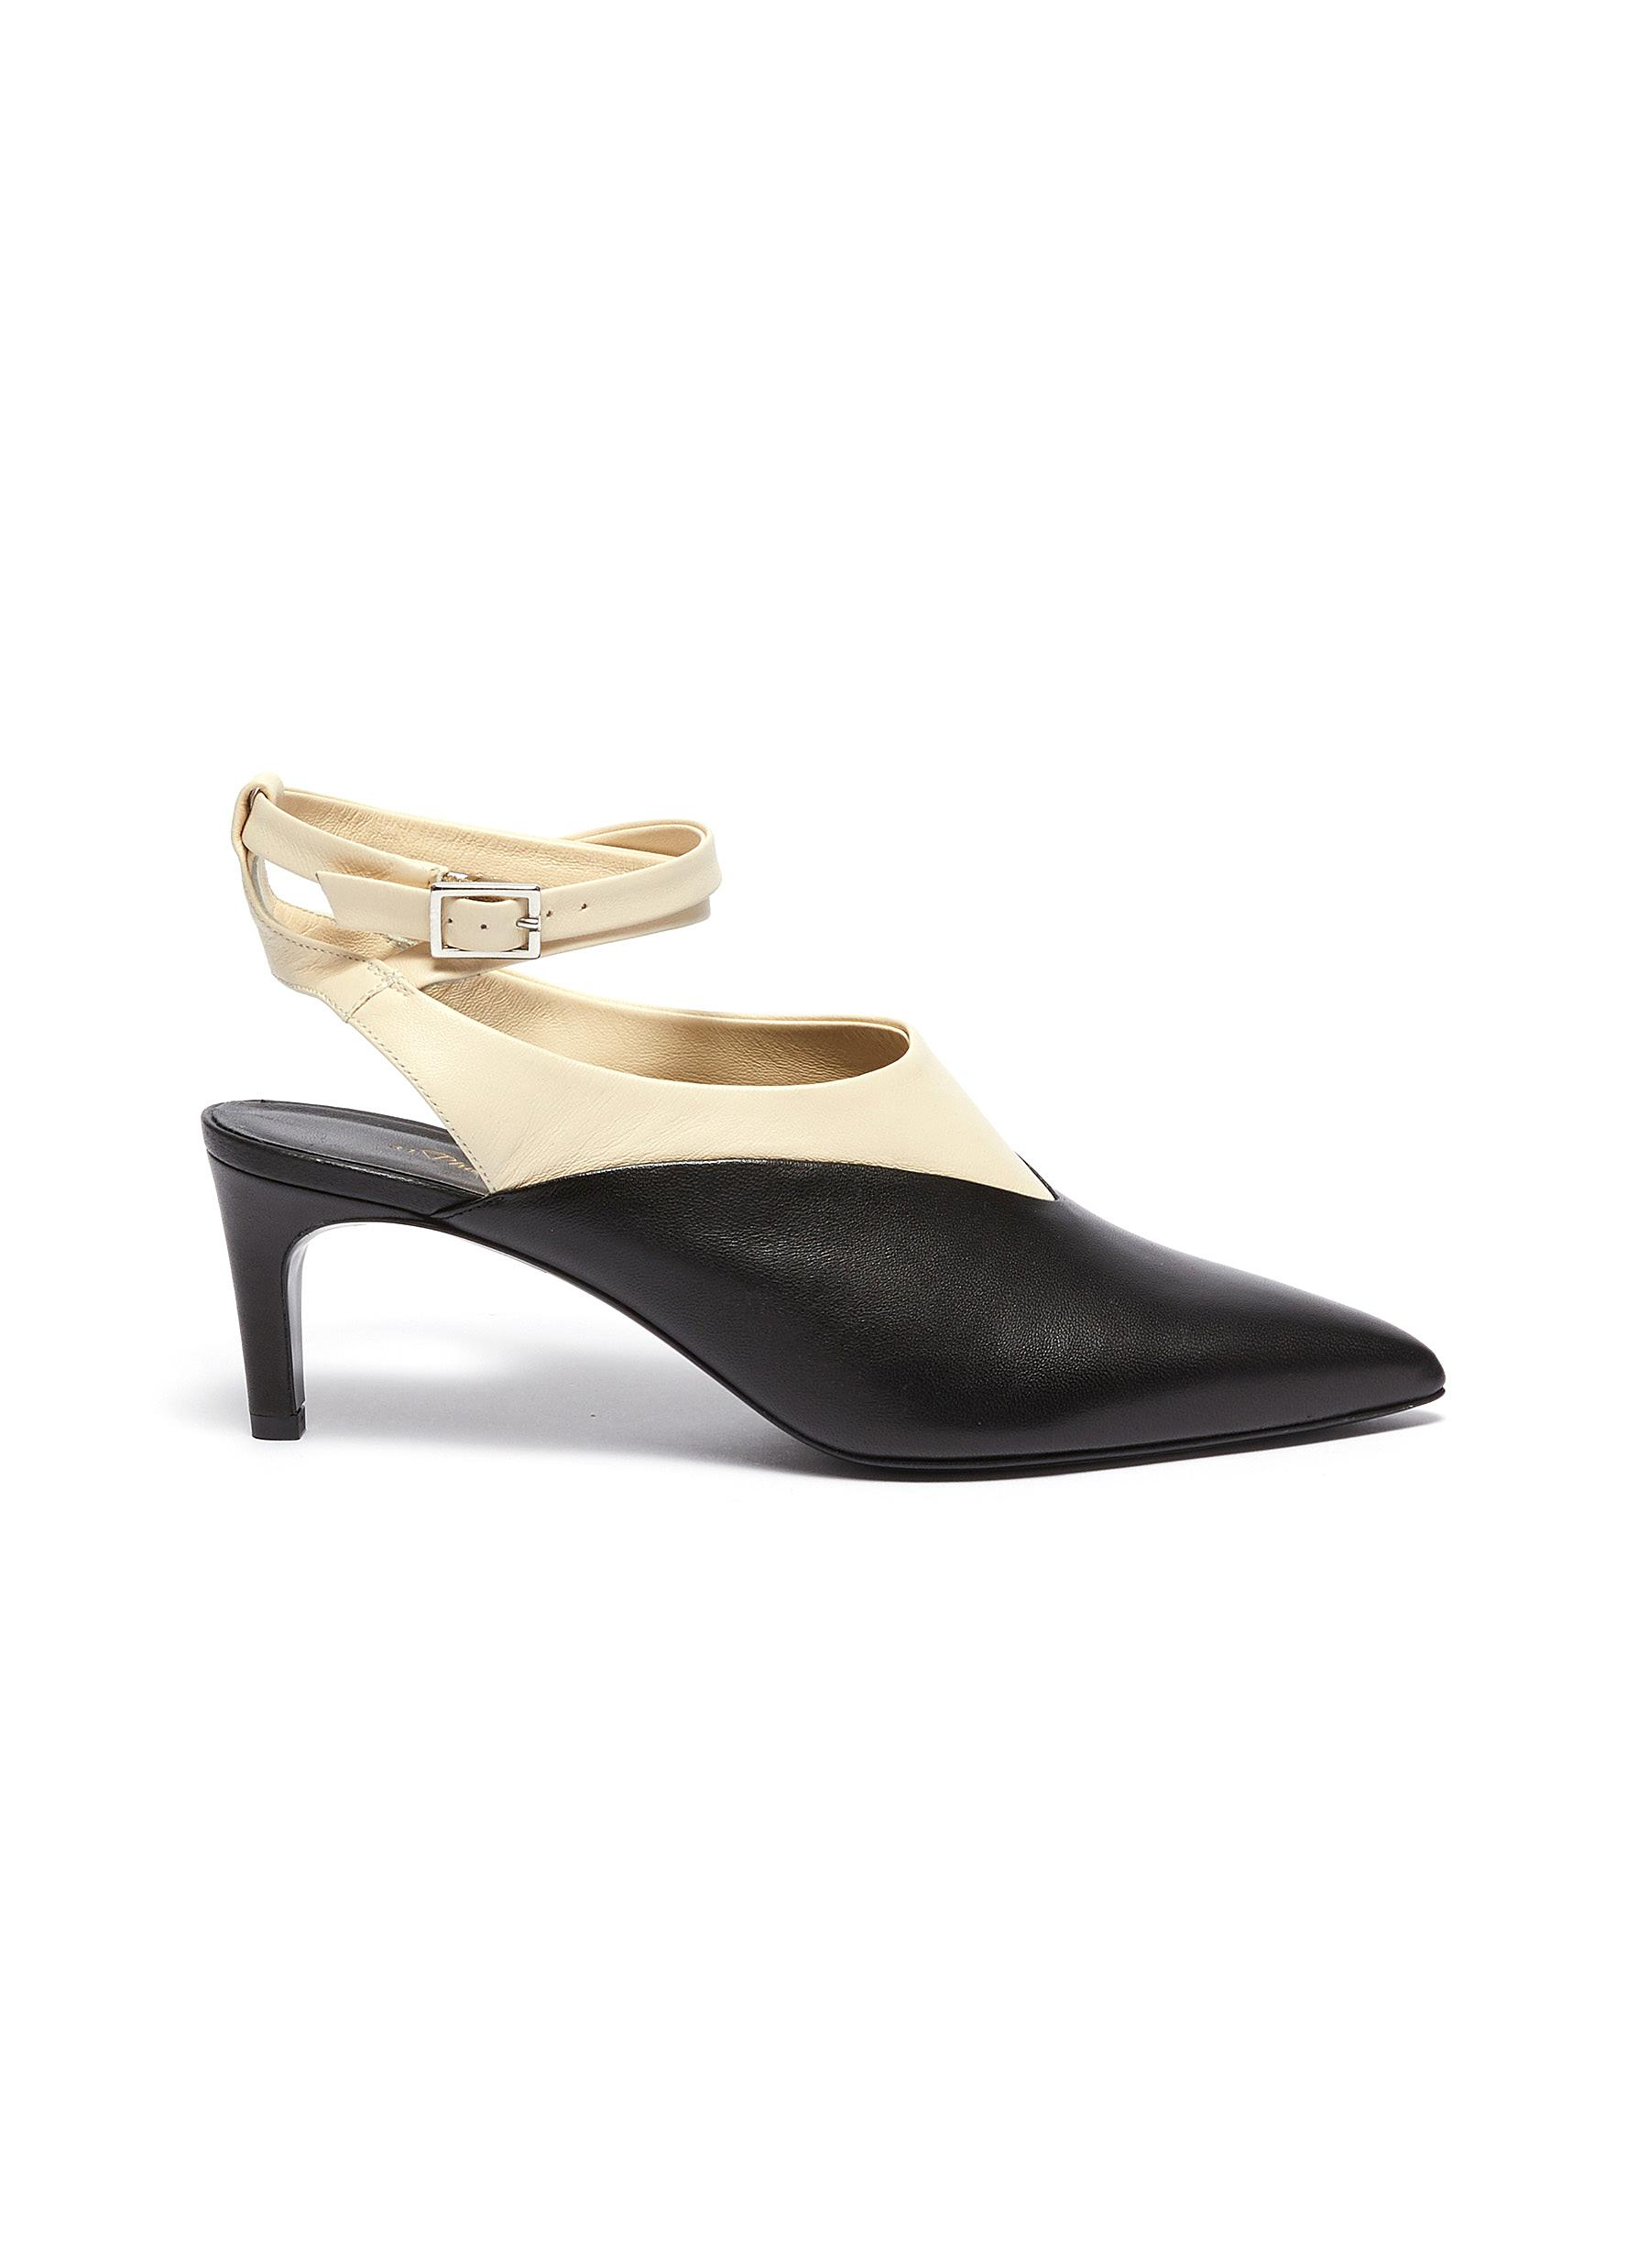 Nina Vamp crossover ankle colourblock leather slingback heels by 3.1 Phillip Lim